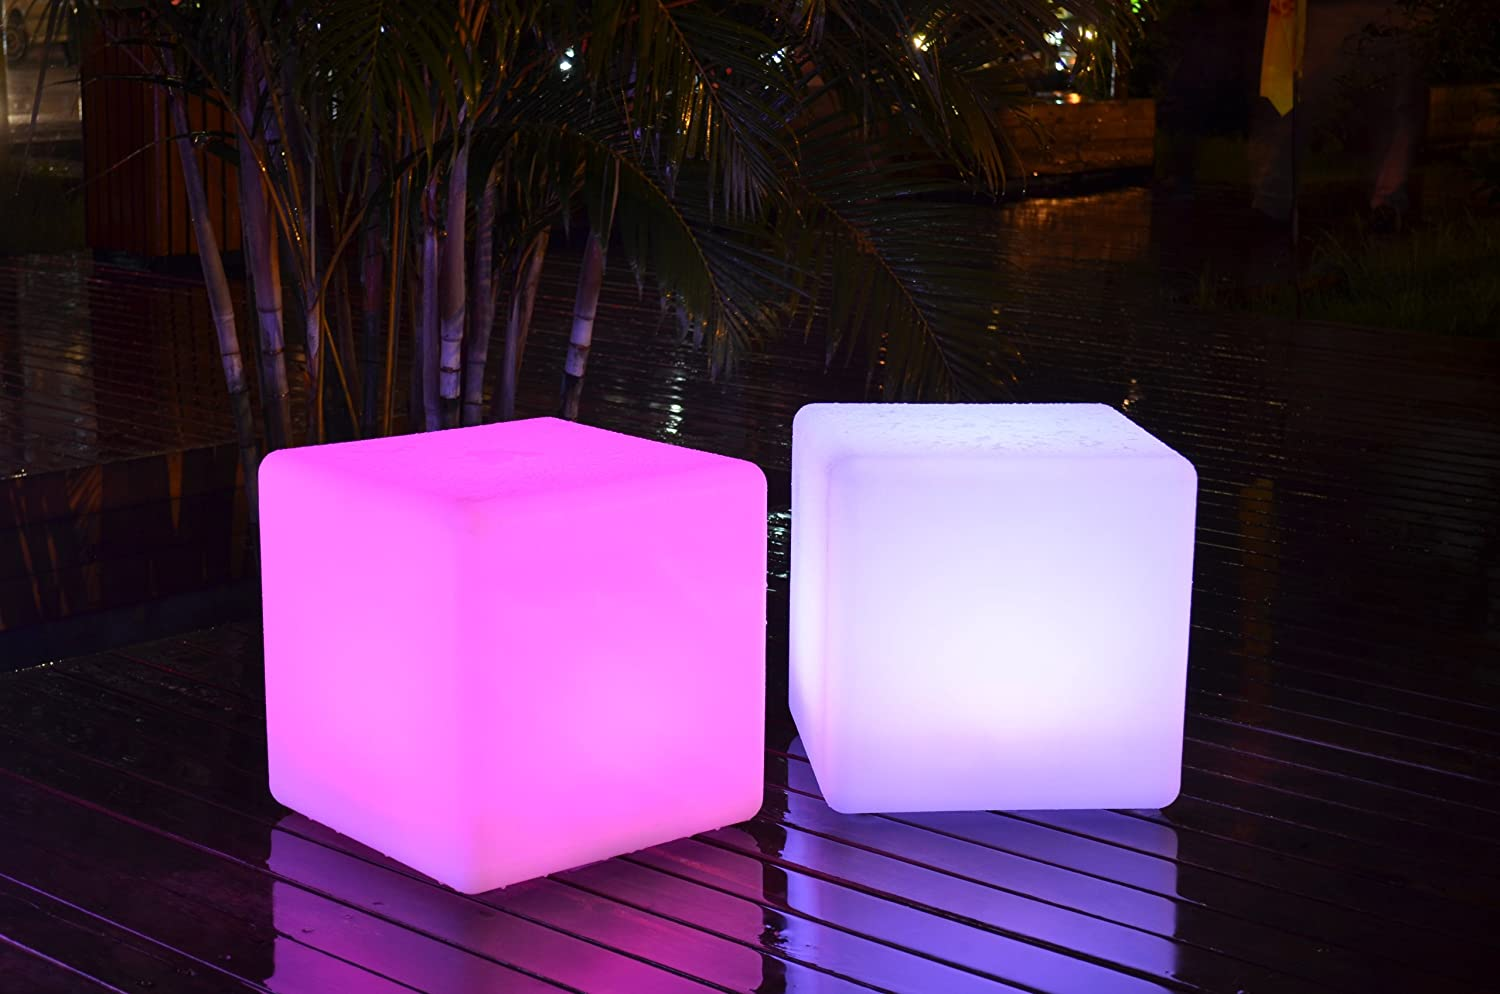 Led Light Cube Chair 16 Inches Waterproof Cordless With Remote Control by Led Planet Lighting